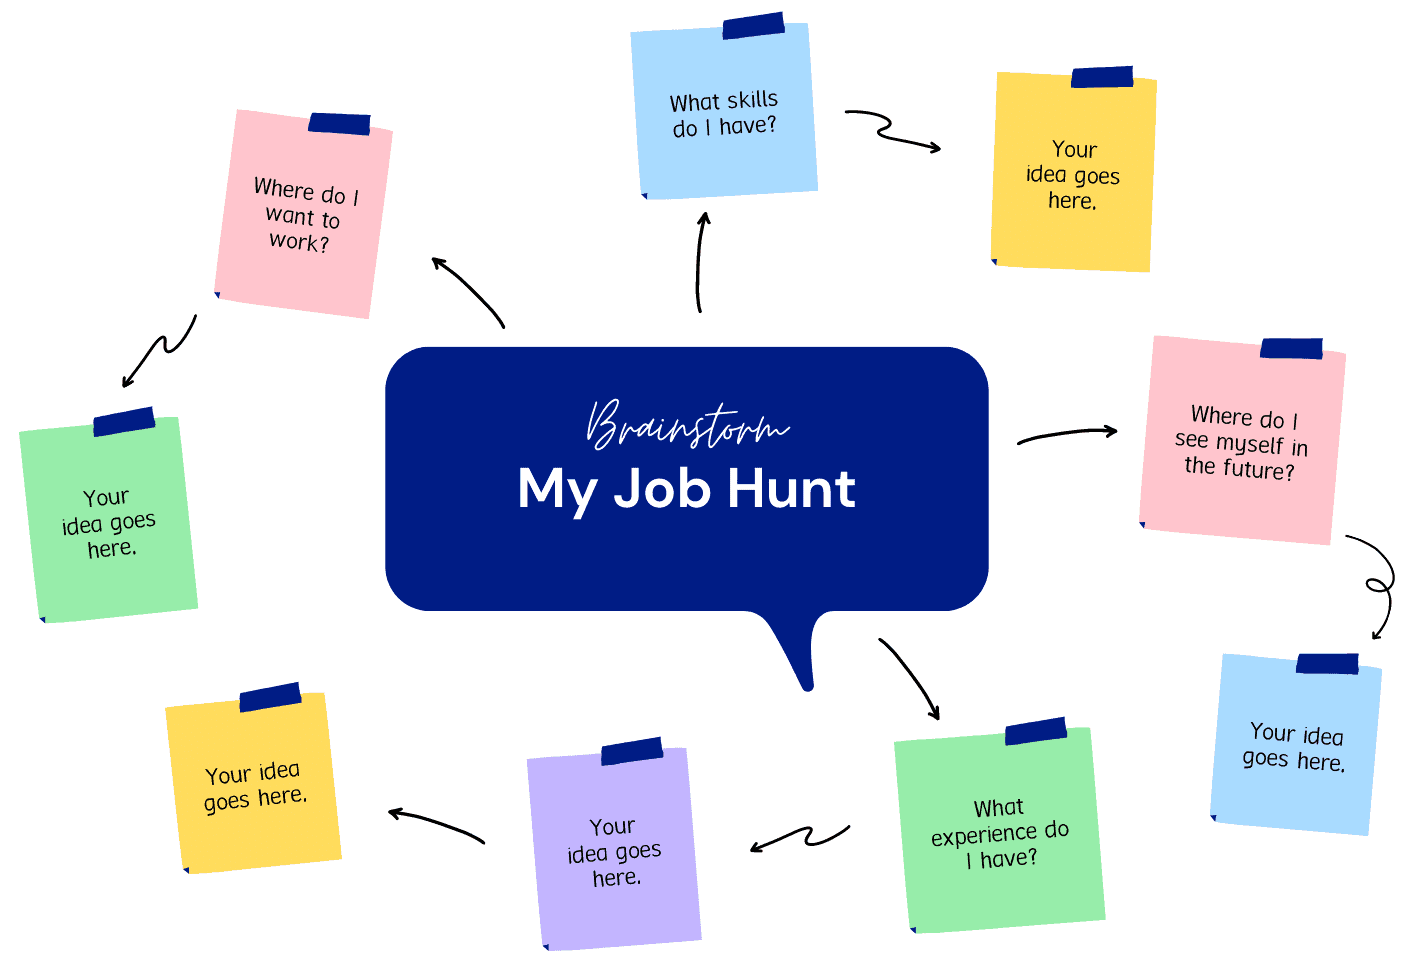 The Brainstorm - Visualise where you are and where you want to be before you look for a new job. That is how to recover after losing your job and can't afford mortgage payments.